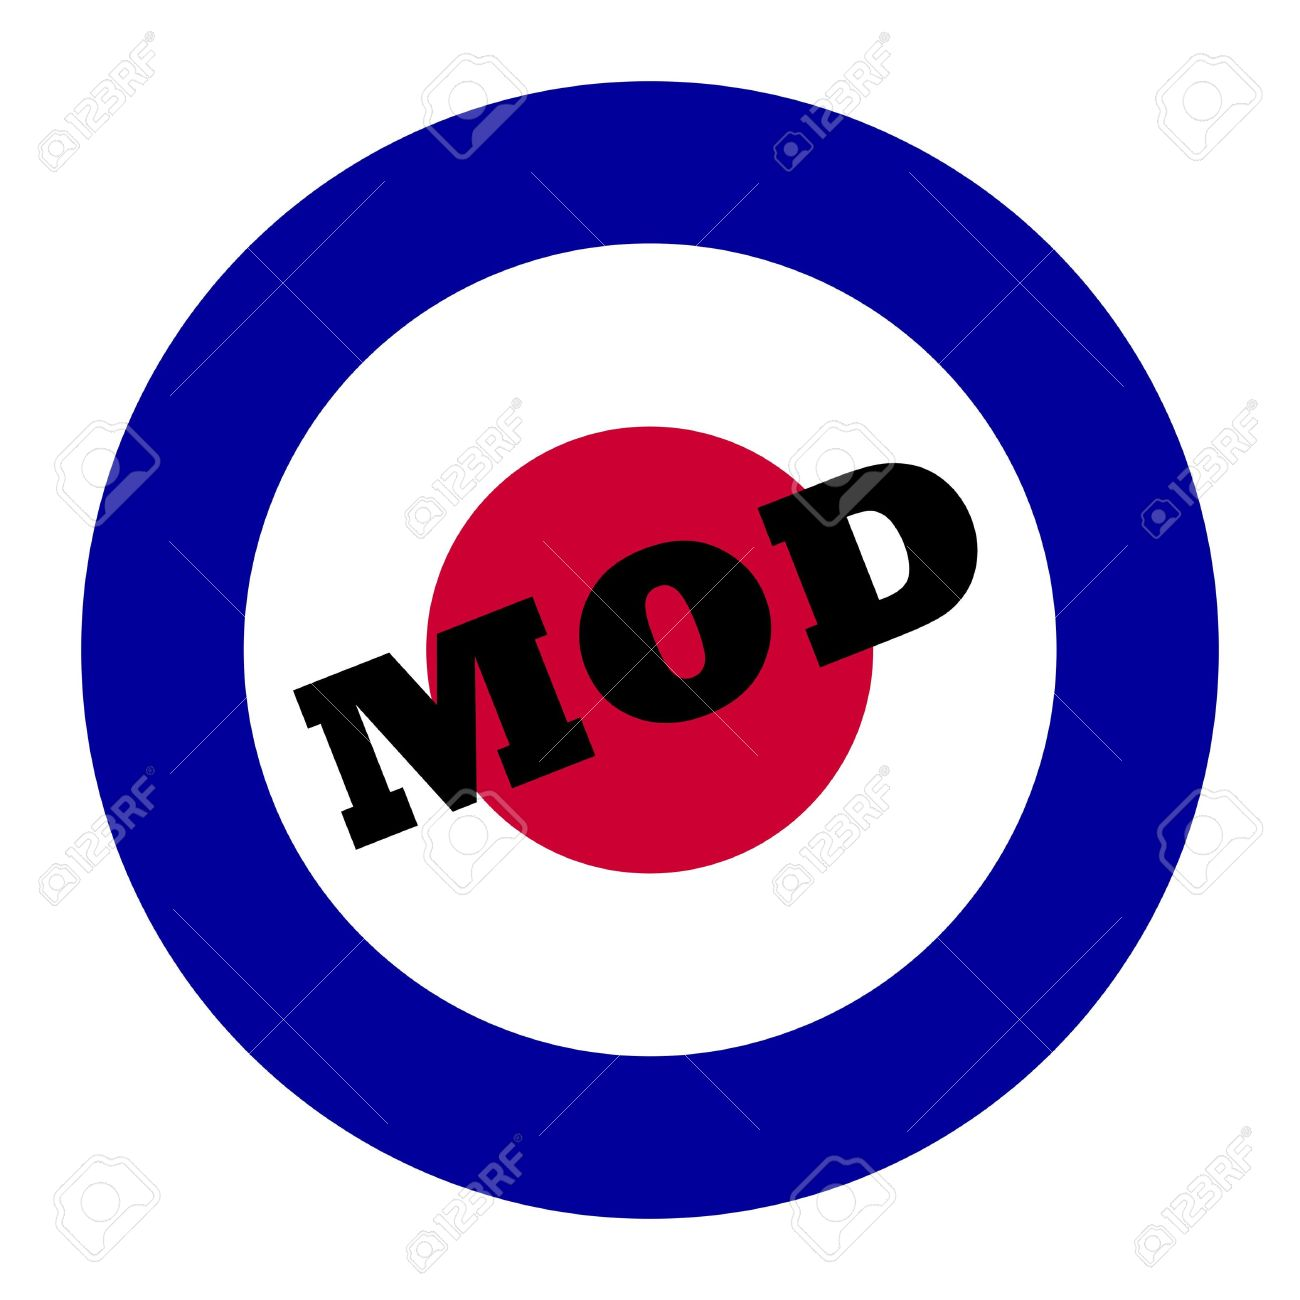 British Royal Air Force Roundel, Also Used As Symbol Of Mod Music.